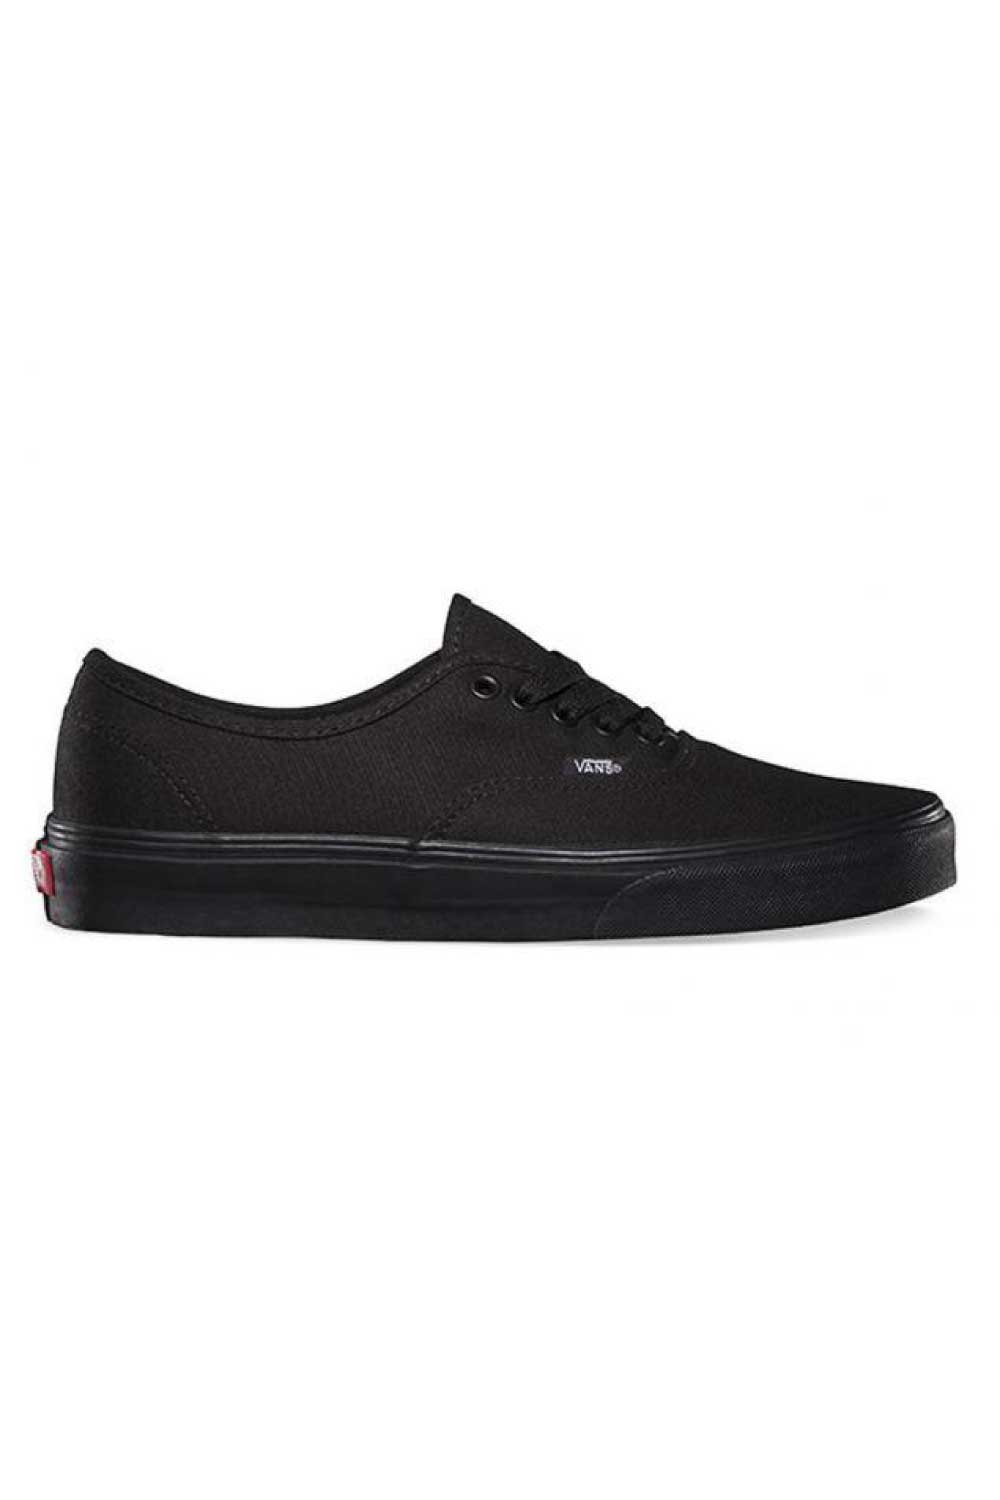 Vans Authentic Black Skate Shoe